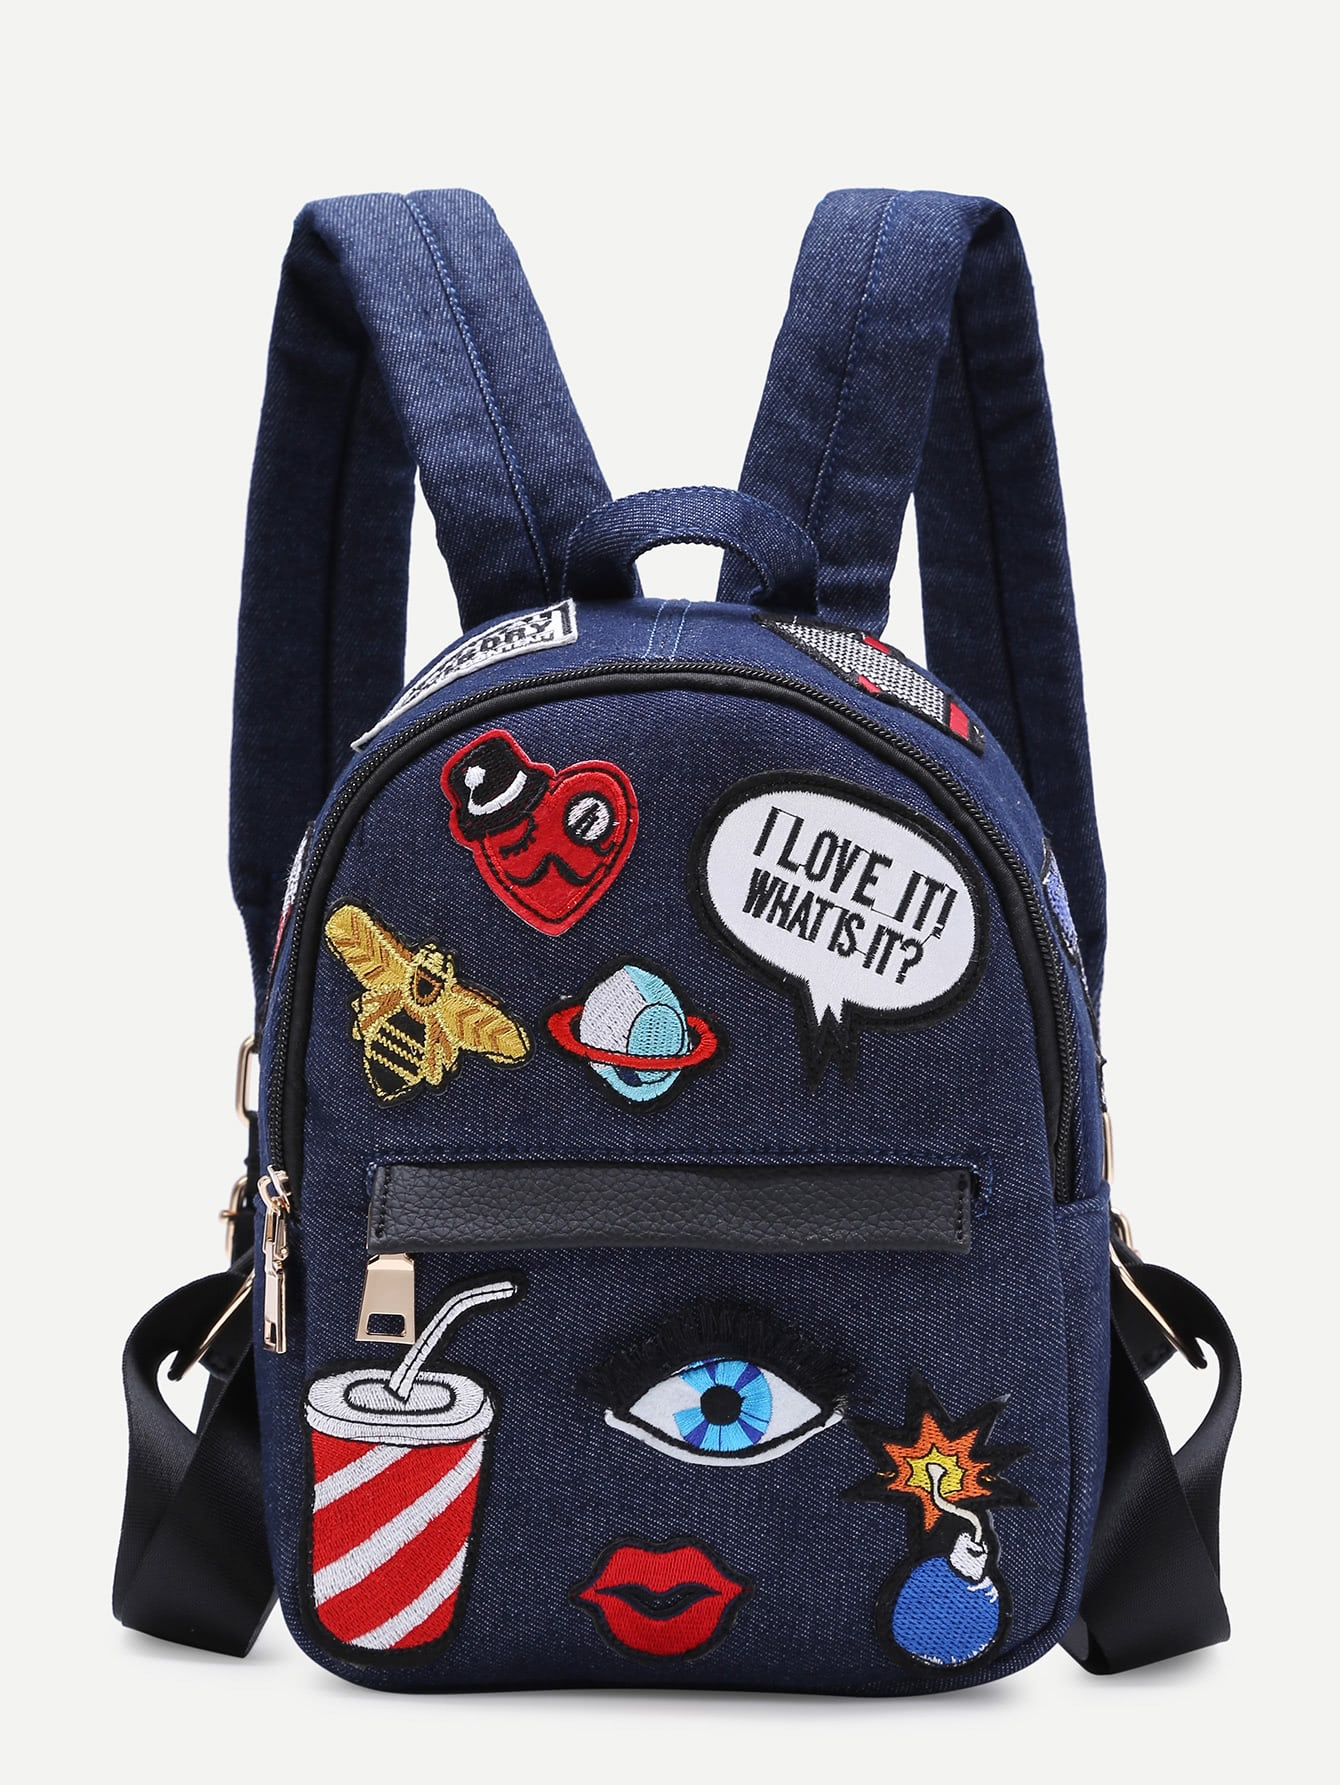 Dark Blue Zip Front Cartoon Patch Mini BackpackDark Blue Zip Front Cartoon Patch Mini Backpack<br><br>color: Navy<br>size: None